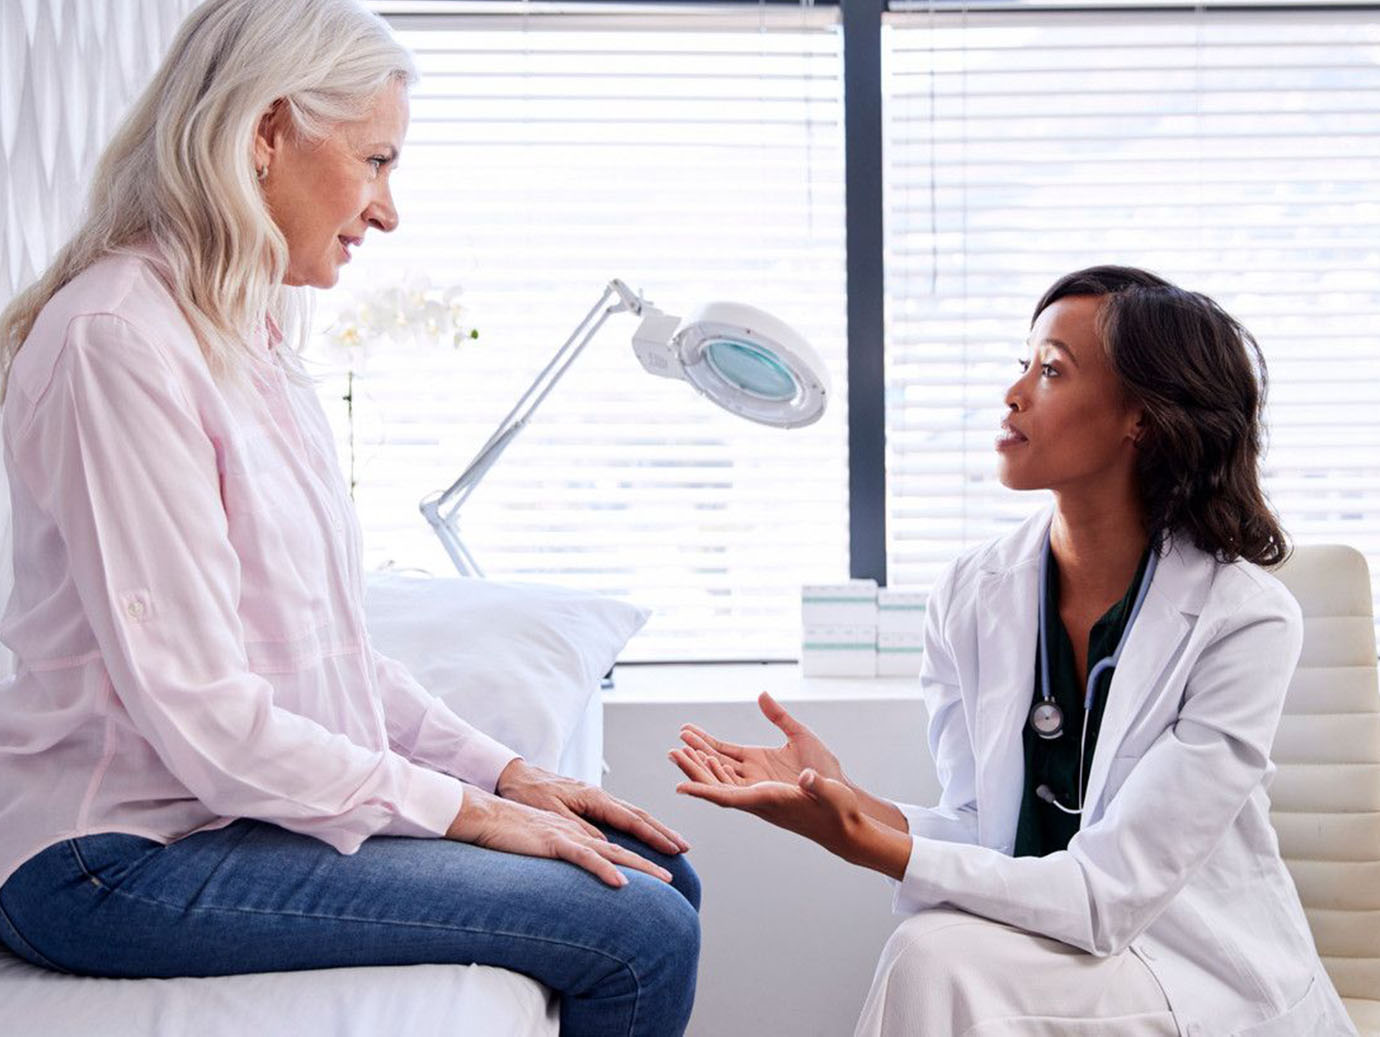 A woman consulting a doctor